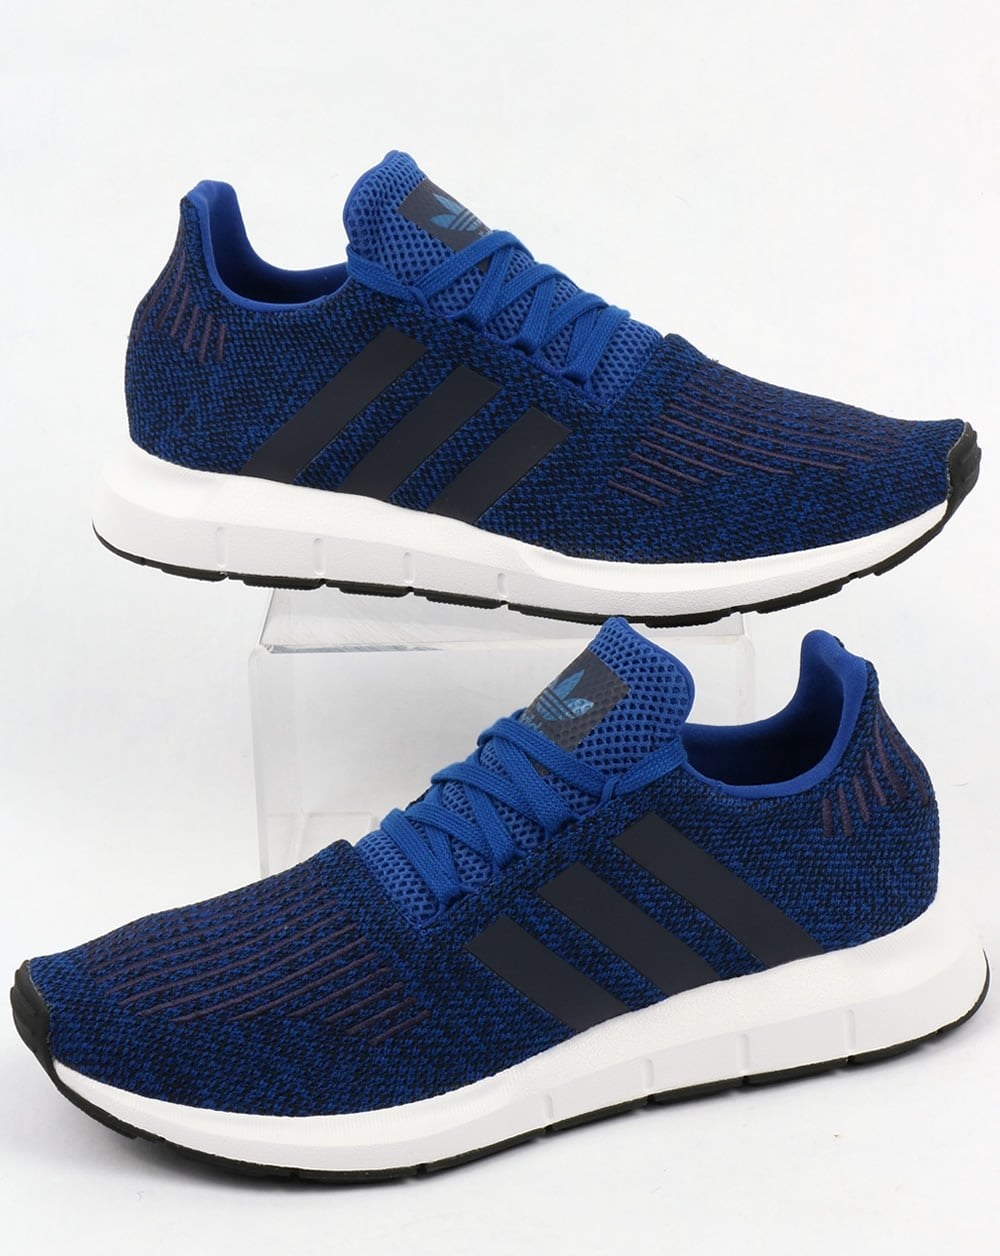 adidas swift run trainers royal blue ink shoes running prime knit runners mens. Black Bedroom Furniture Sets. Home Design Ideas